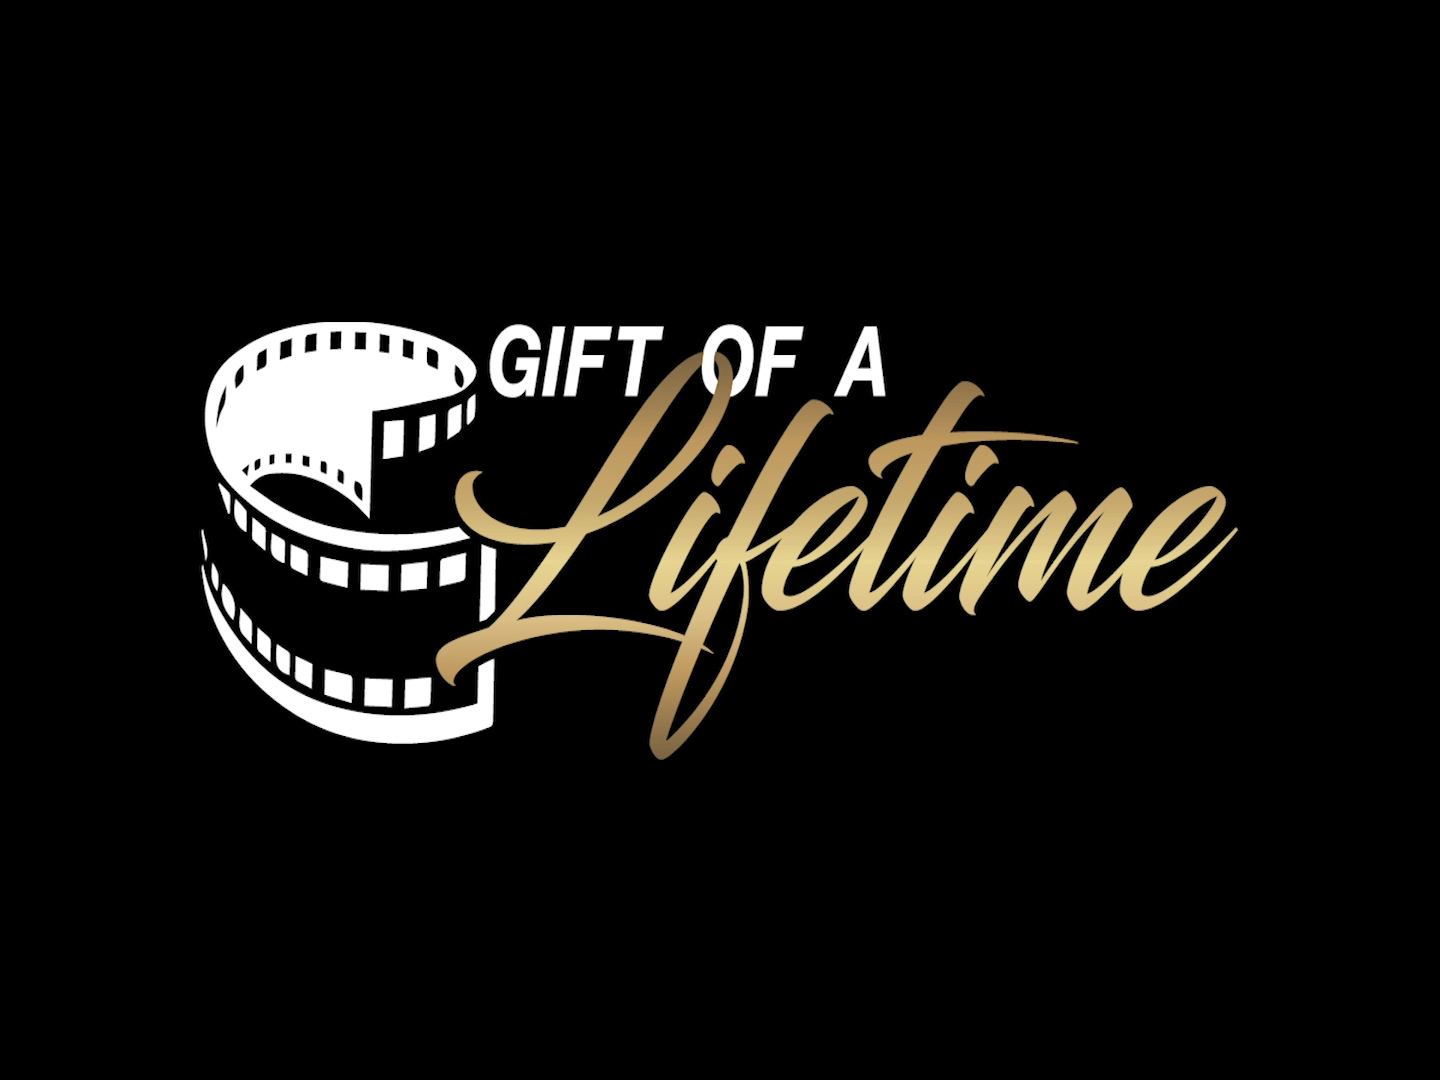 GIFT OF A LIFETIME - OPENING SCENE: AN INTRODUCTION TO OUR UNIQUE PRODUCT